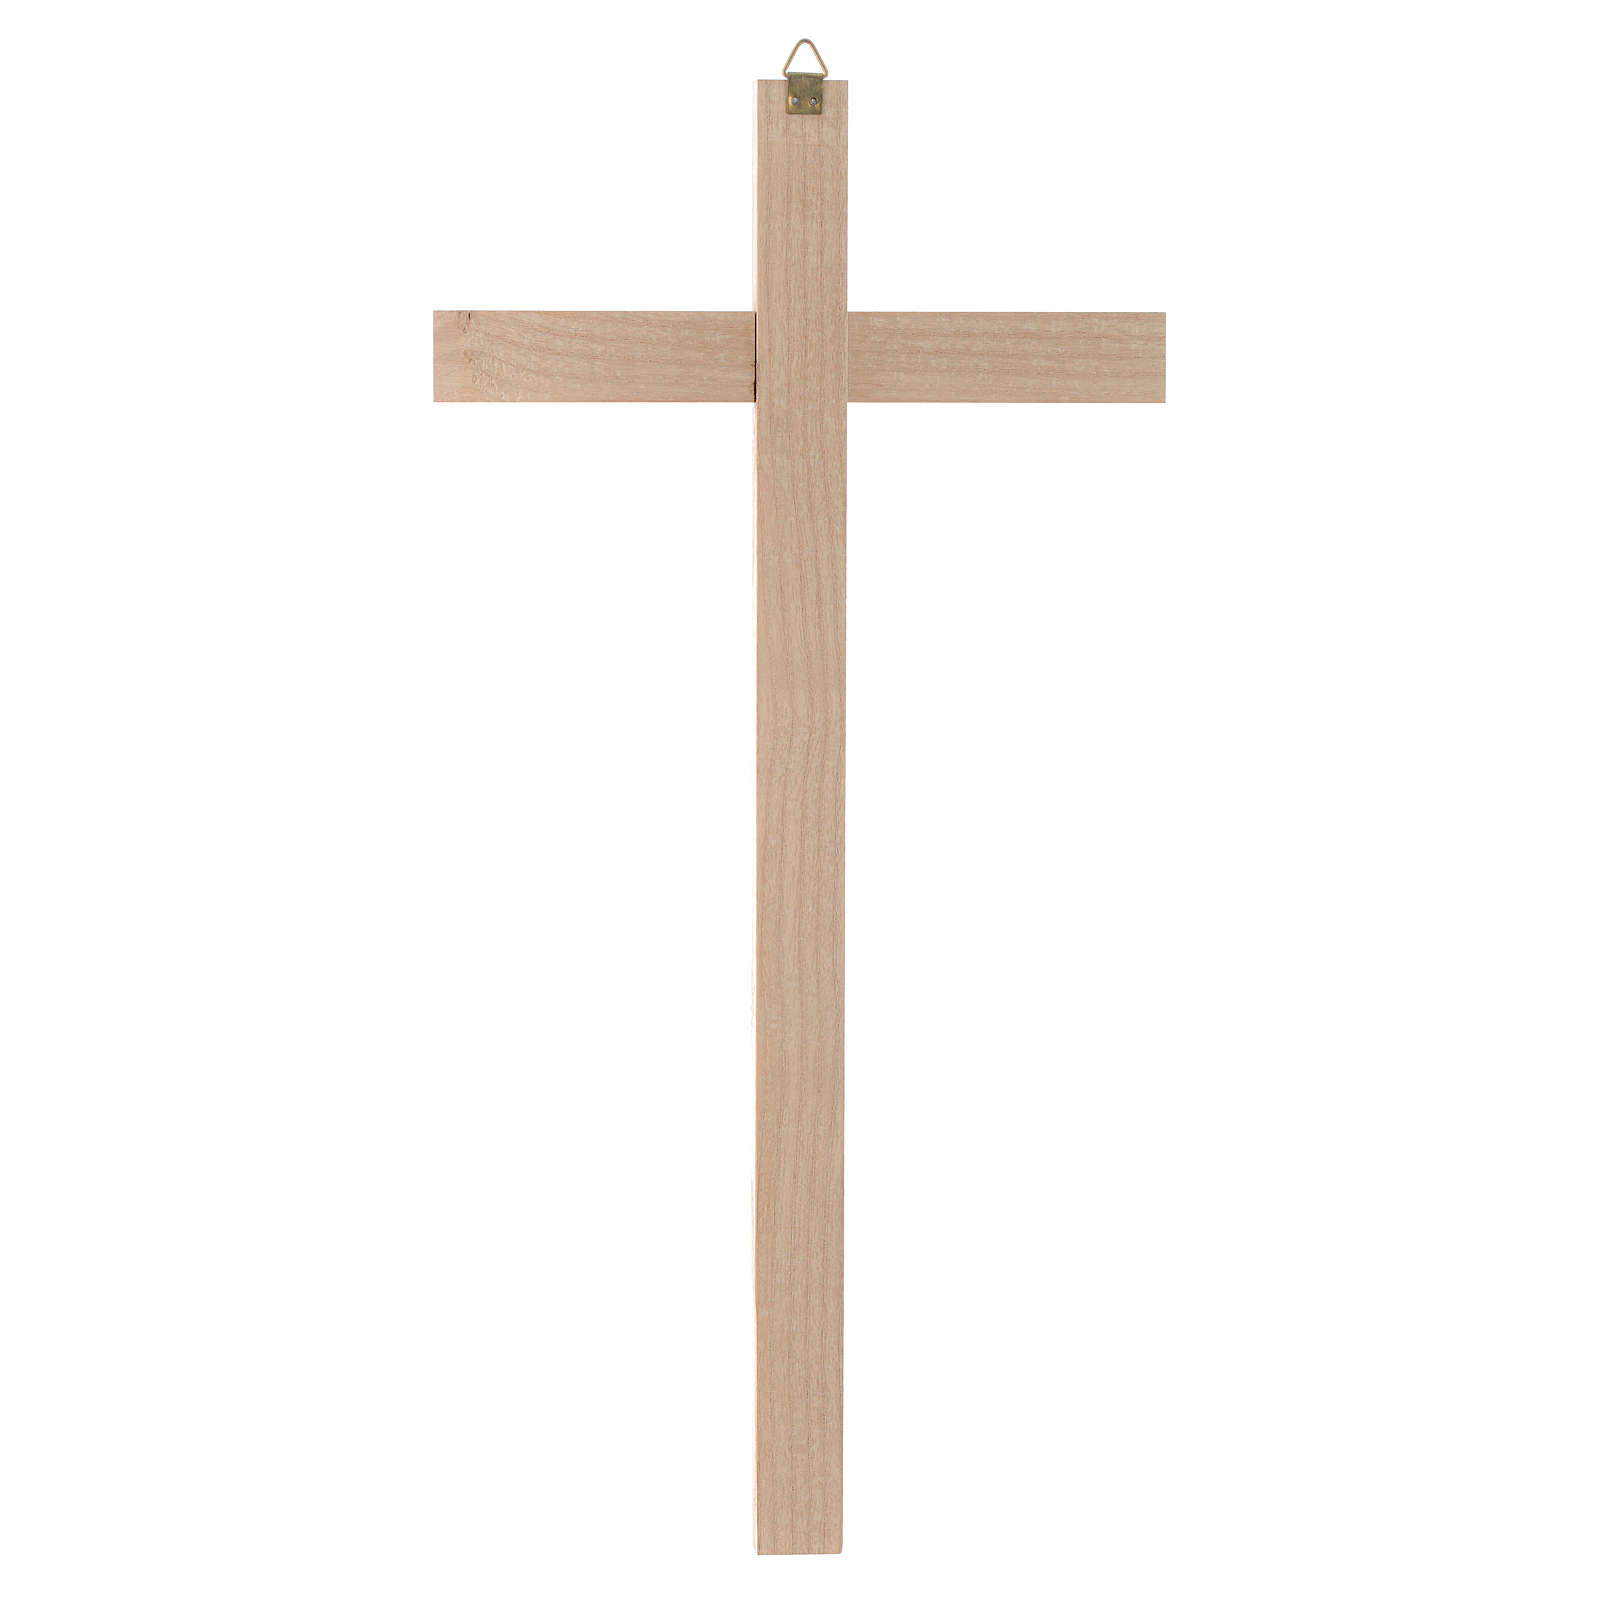 Natural wood cross 4